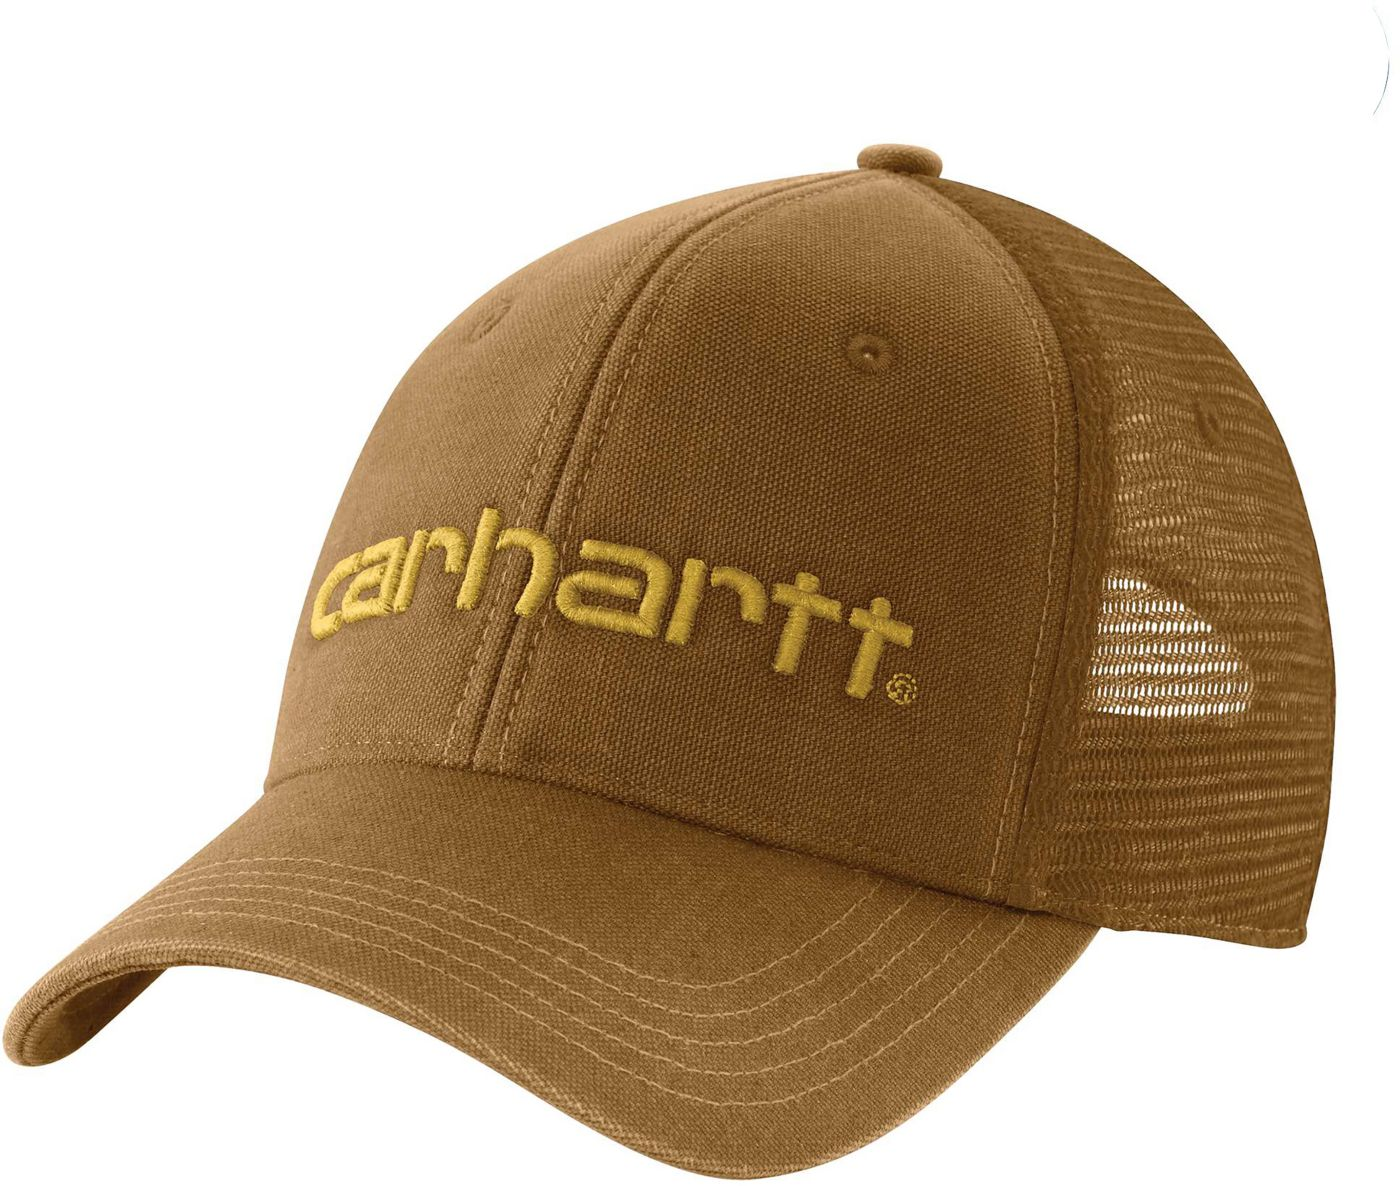 Carhartt Men's Dunmore Mesh Back Hat